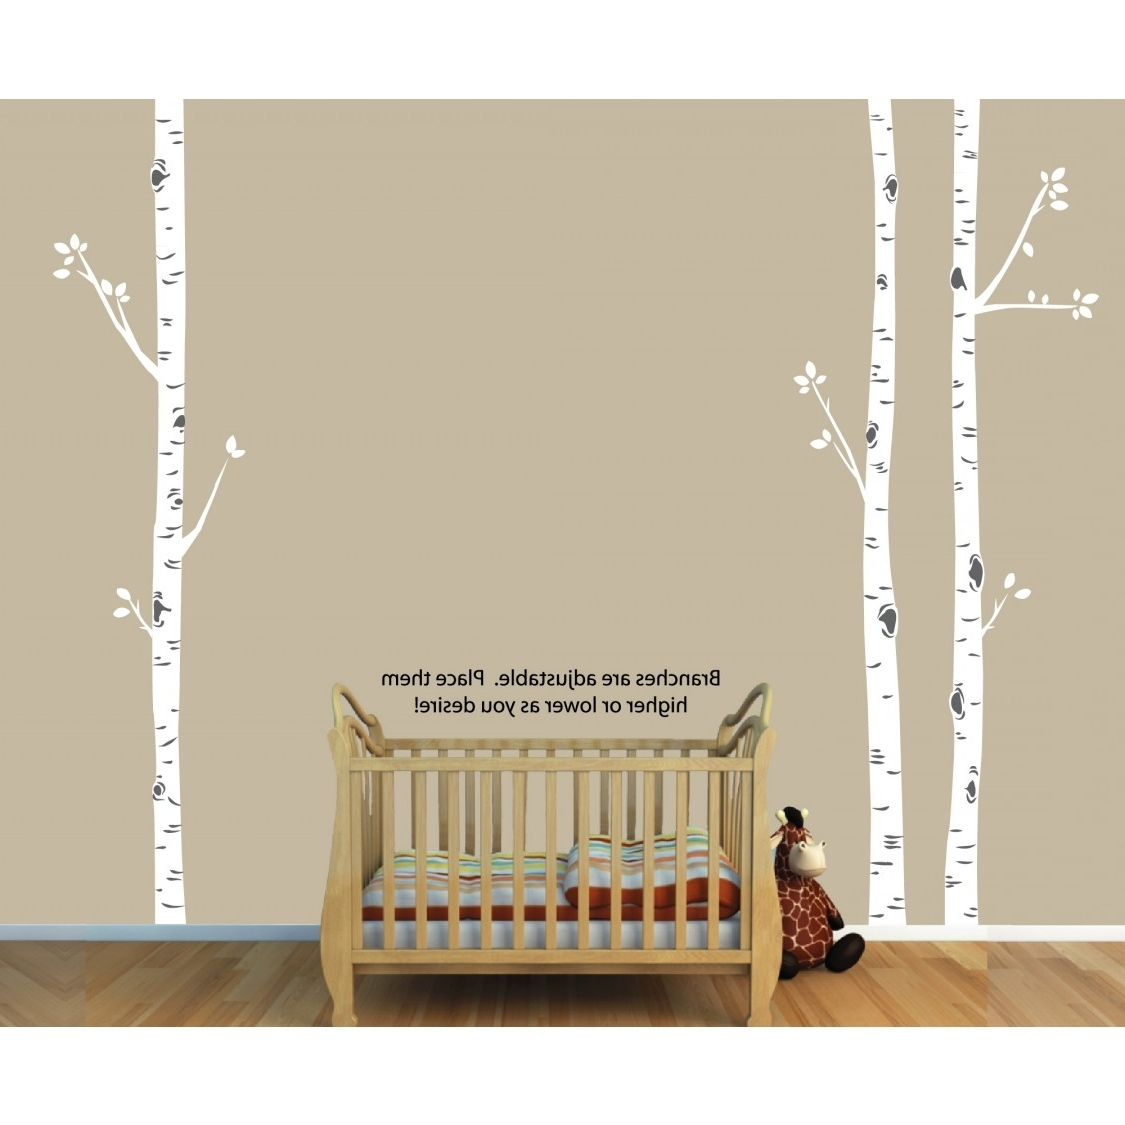 Birch Tree Wall Art In Famous Birch Tree Wall Art And Birch Tree Decals For Nursery For Girls (View 3 of 20)